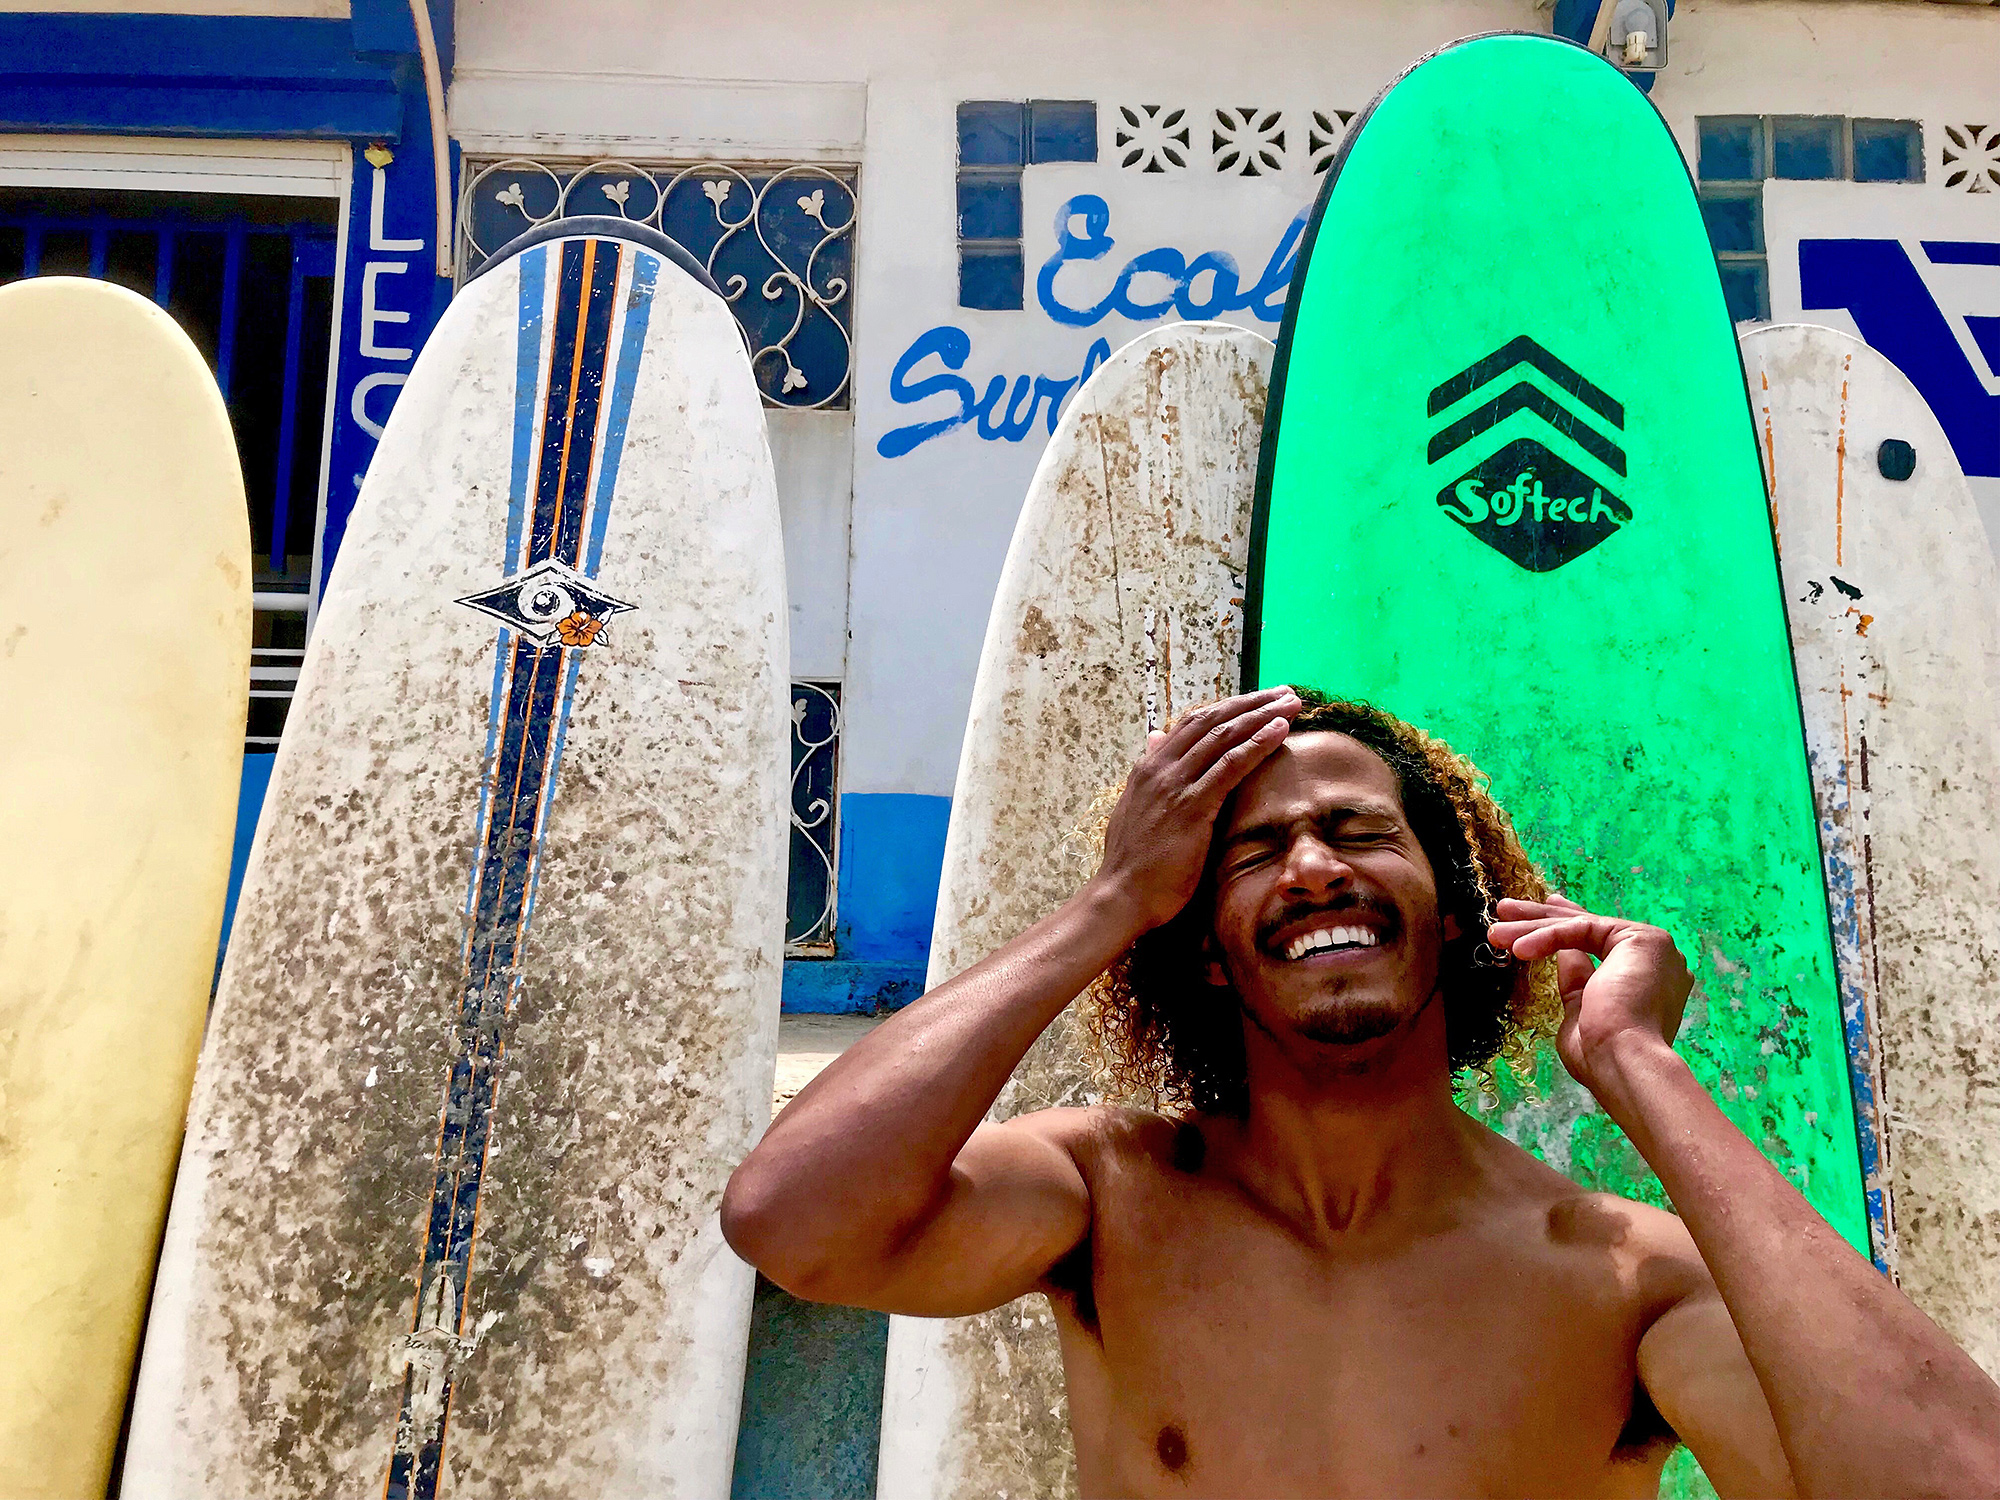 a shirtless man smiles in front of several surfboards leaning against a tiled wall